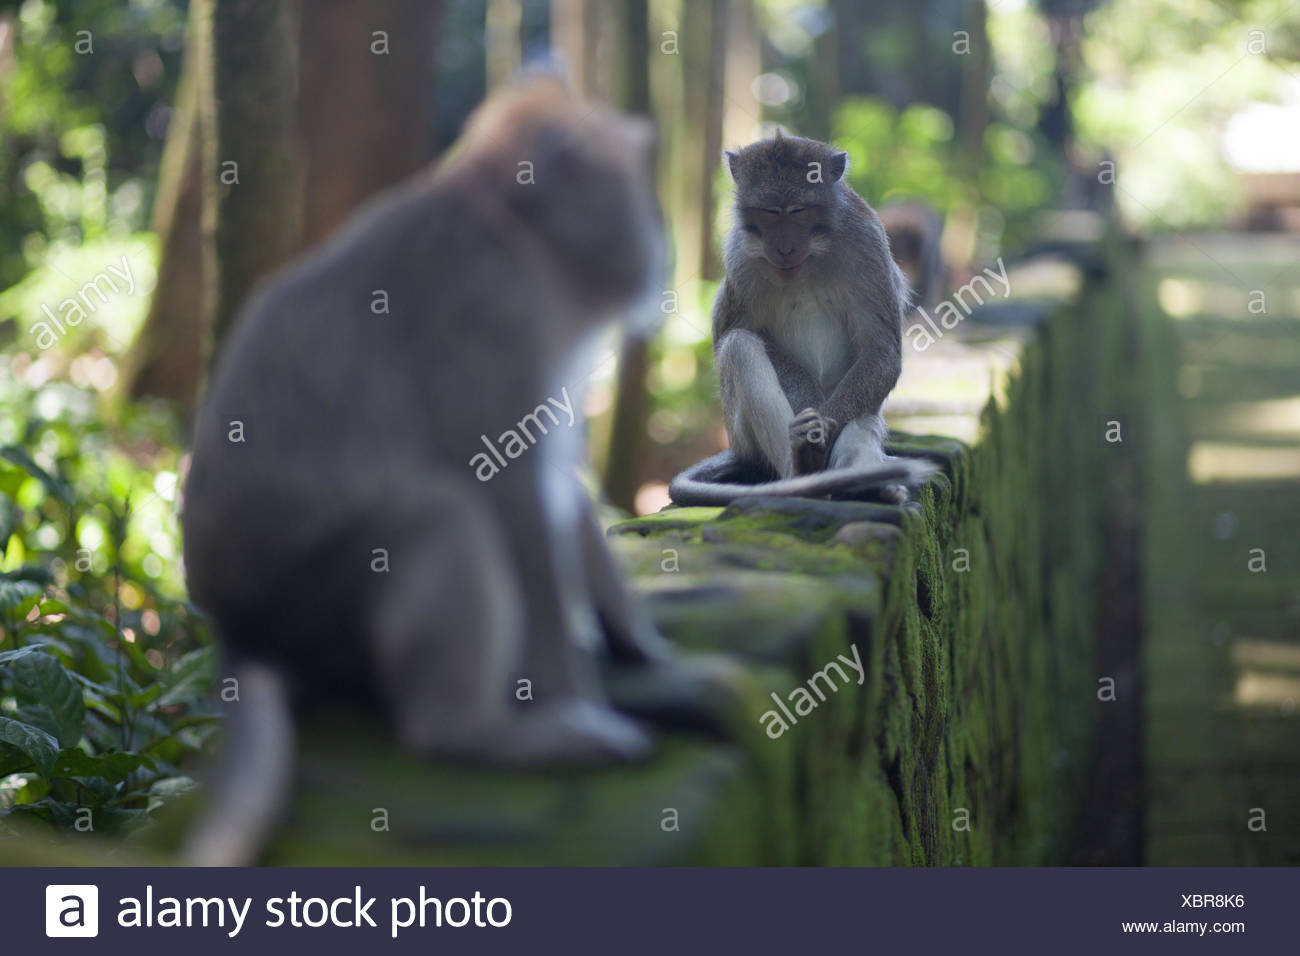 Long-Tailed Macaques Sitting On Wall - Stock Image